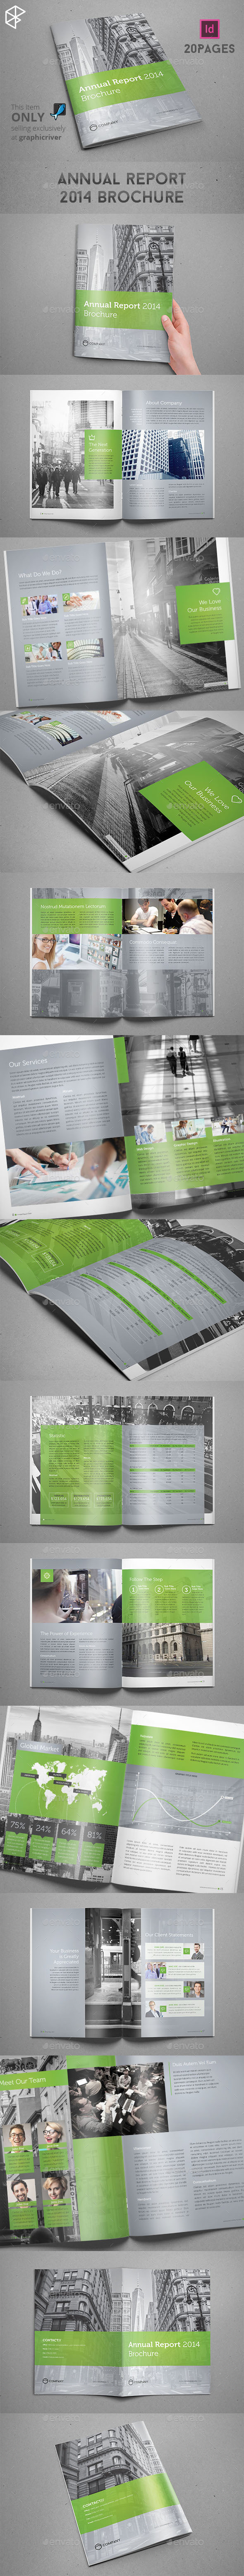 GraphicRiver Annual Report 2014 Brochure 9769019